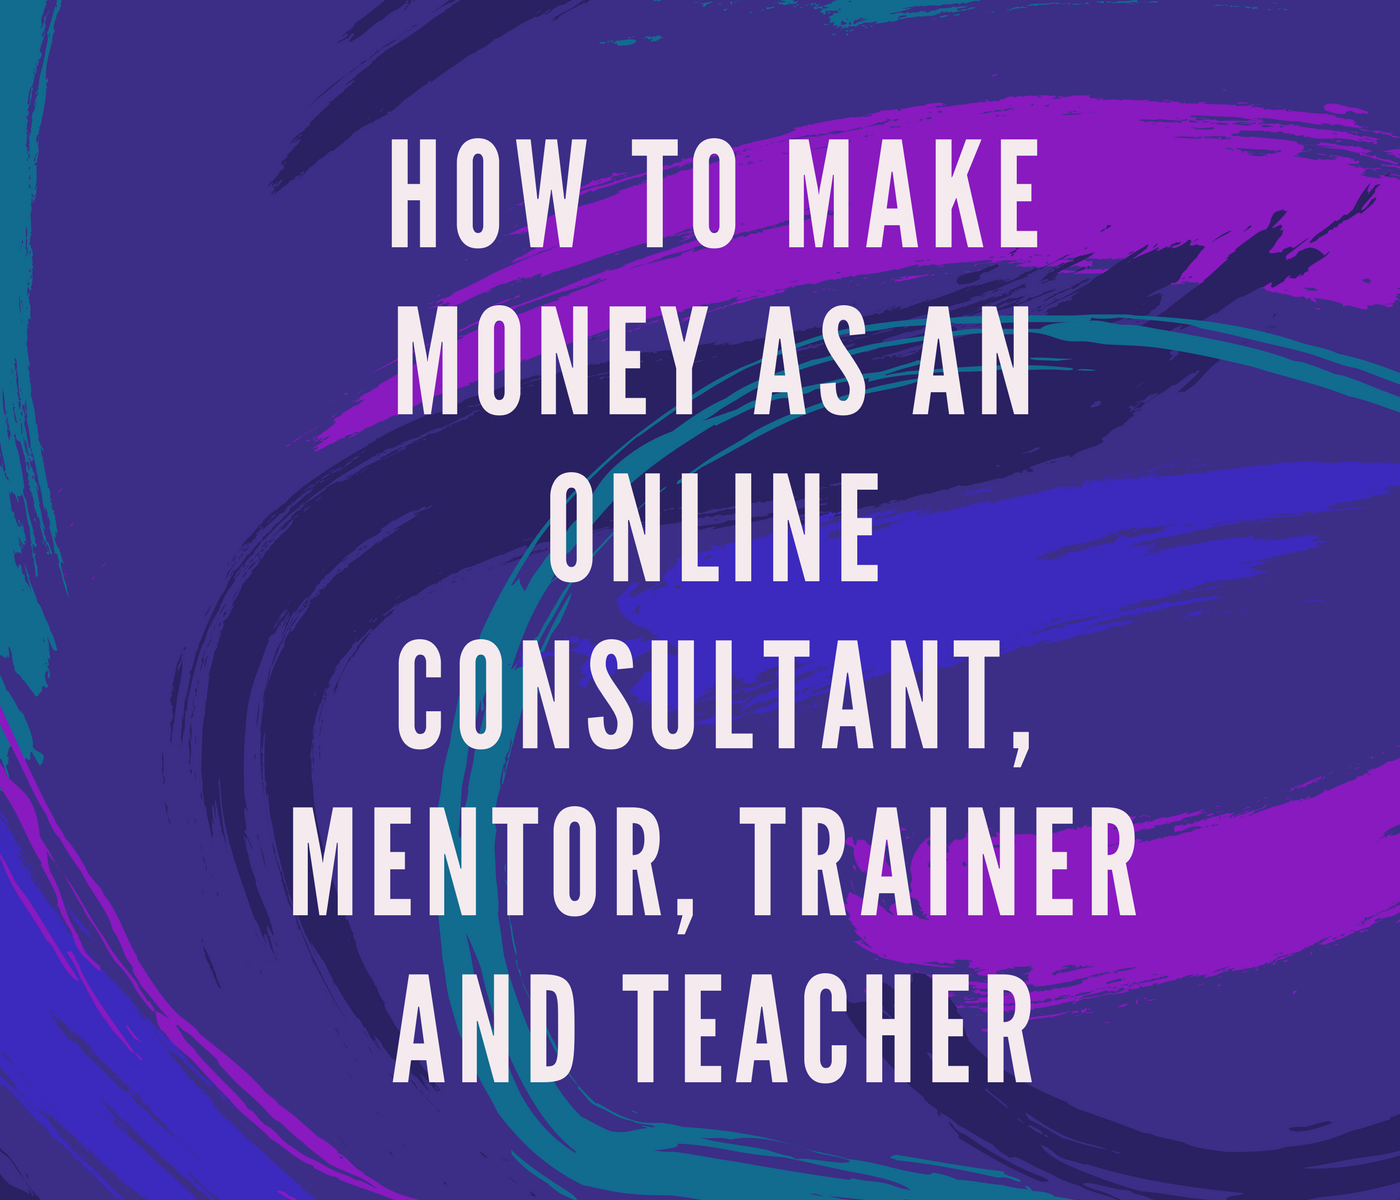 How to Make Money as an Online Consultant, Mentor, Trainer and Teacher